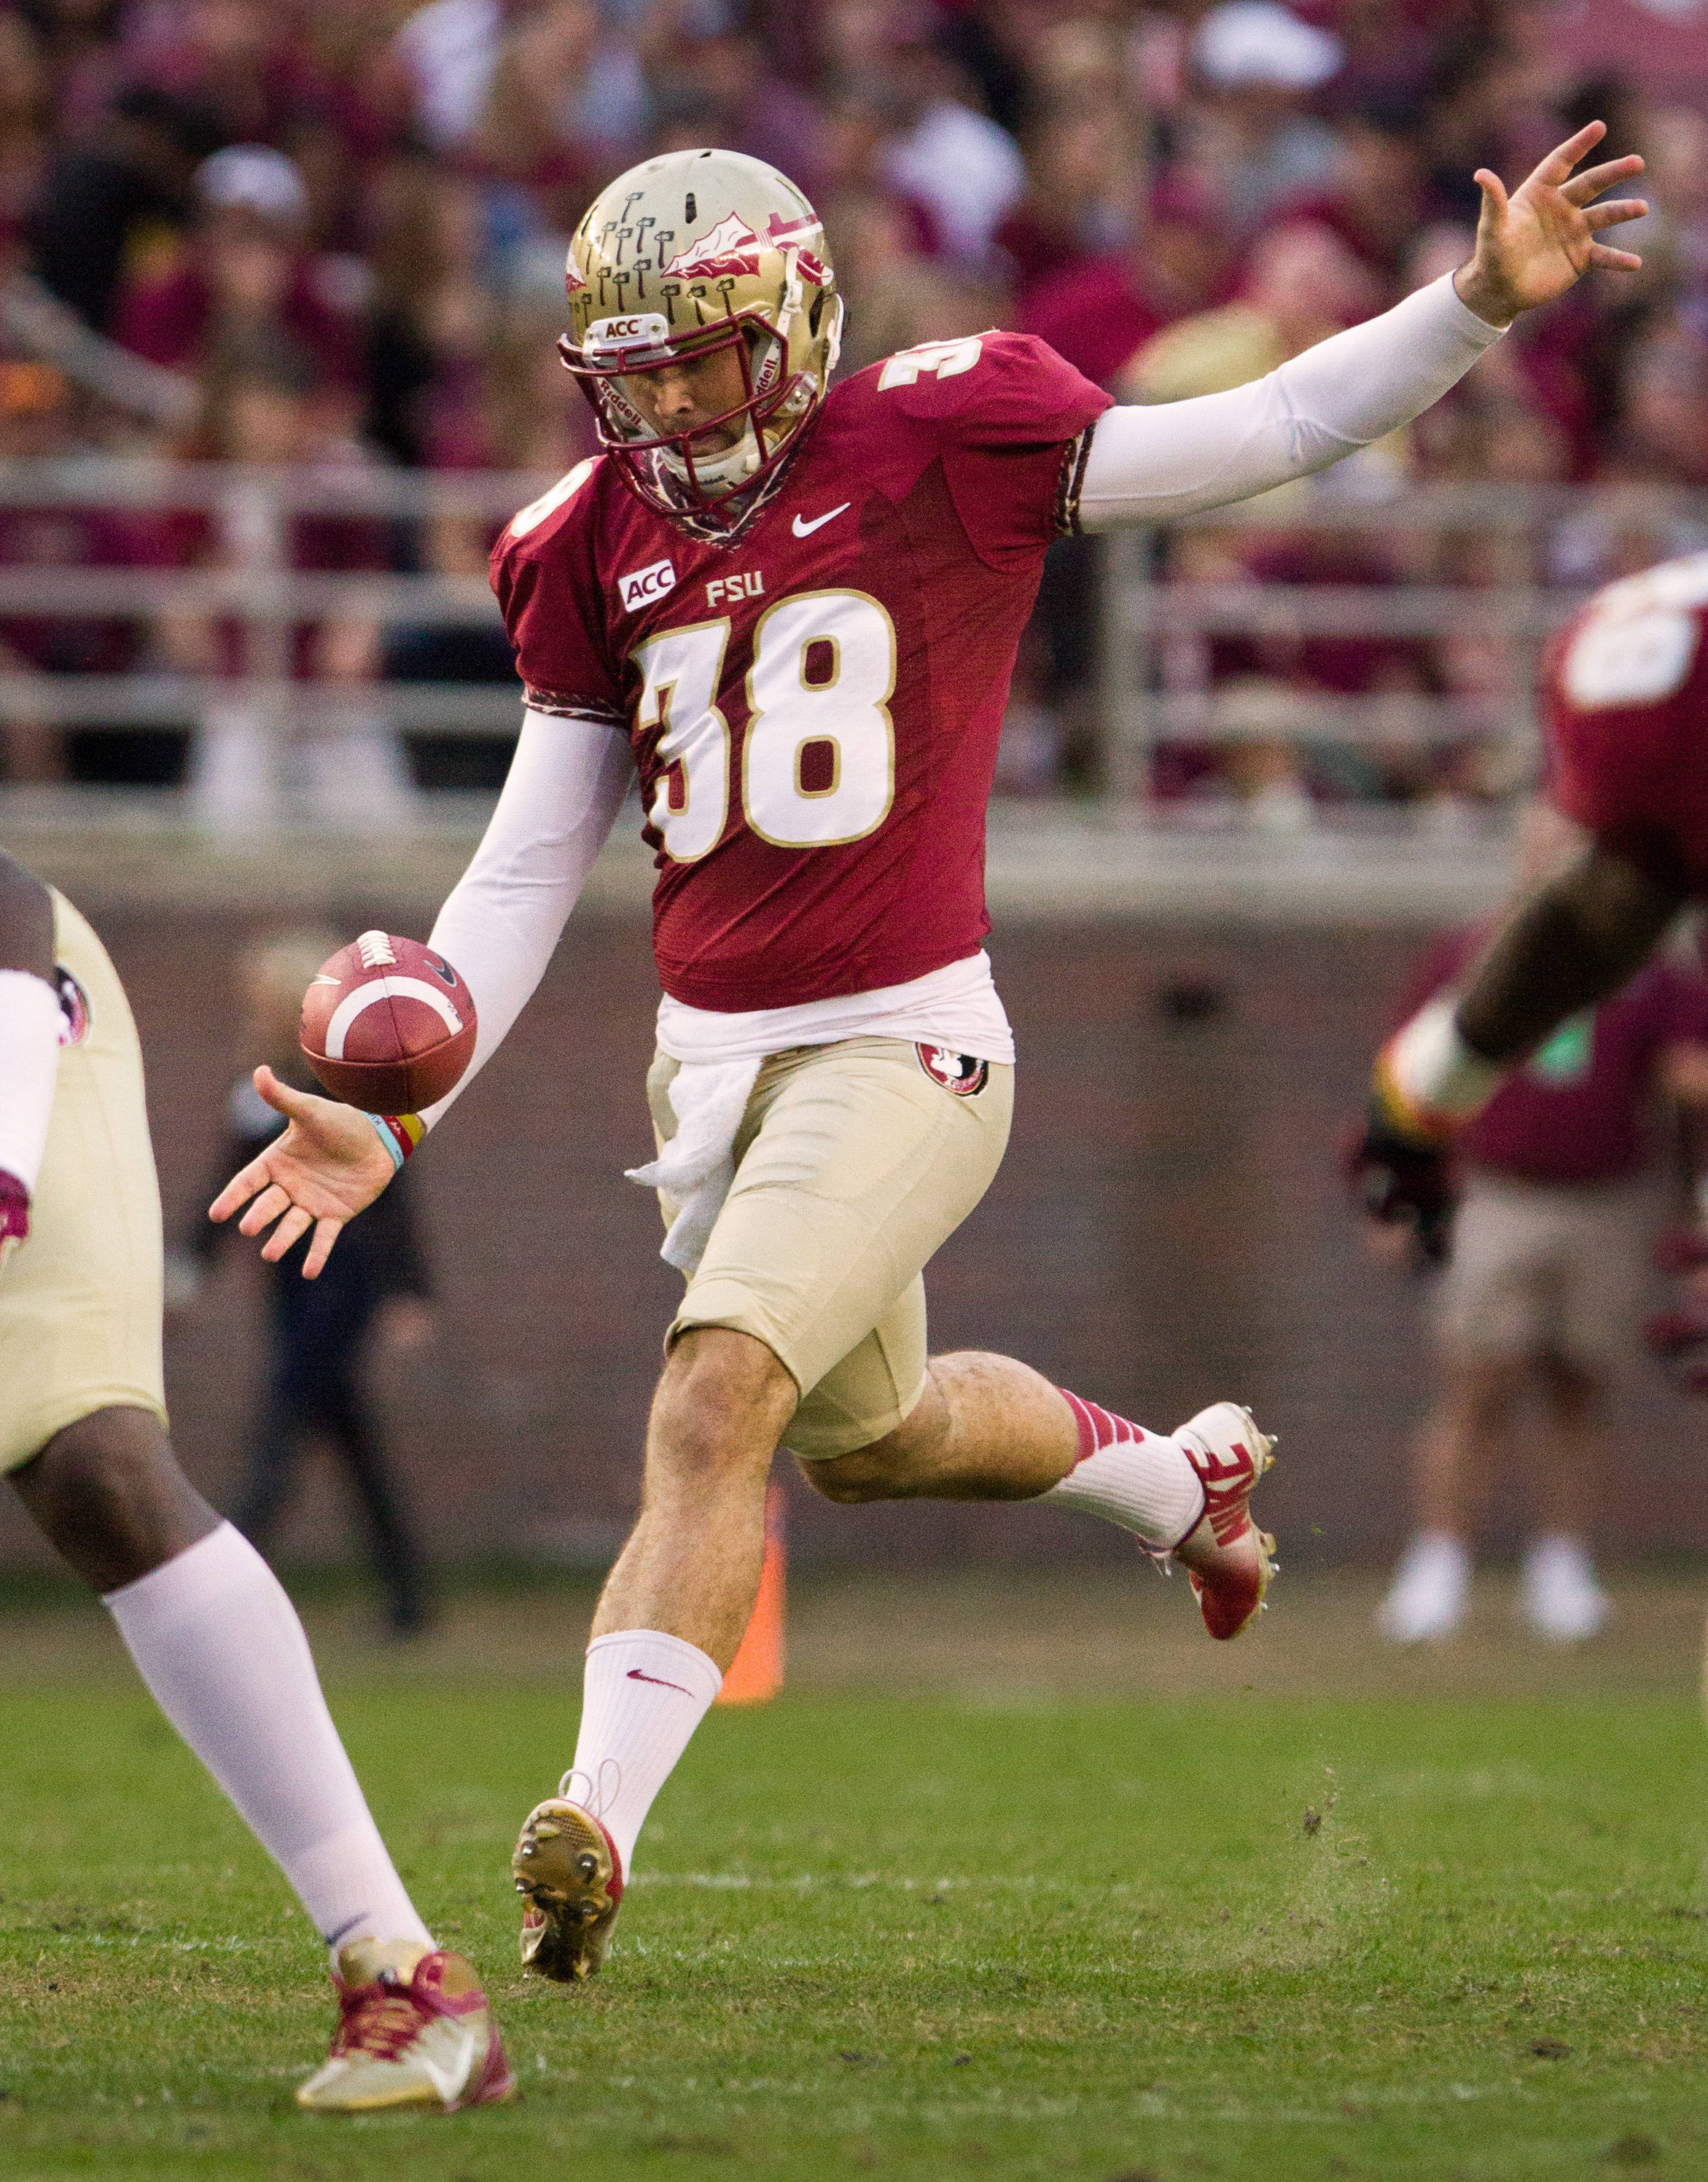 Cason Beatty (38) punts during FSU Football's 59-3 win over Syracuse on Saturday, November 16, 2013 in Tallahassee, Fla. Photo by Mike Schwarz.